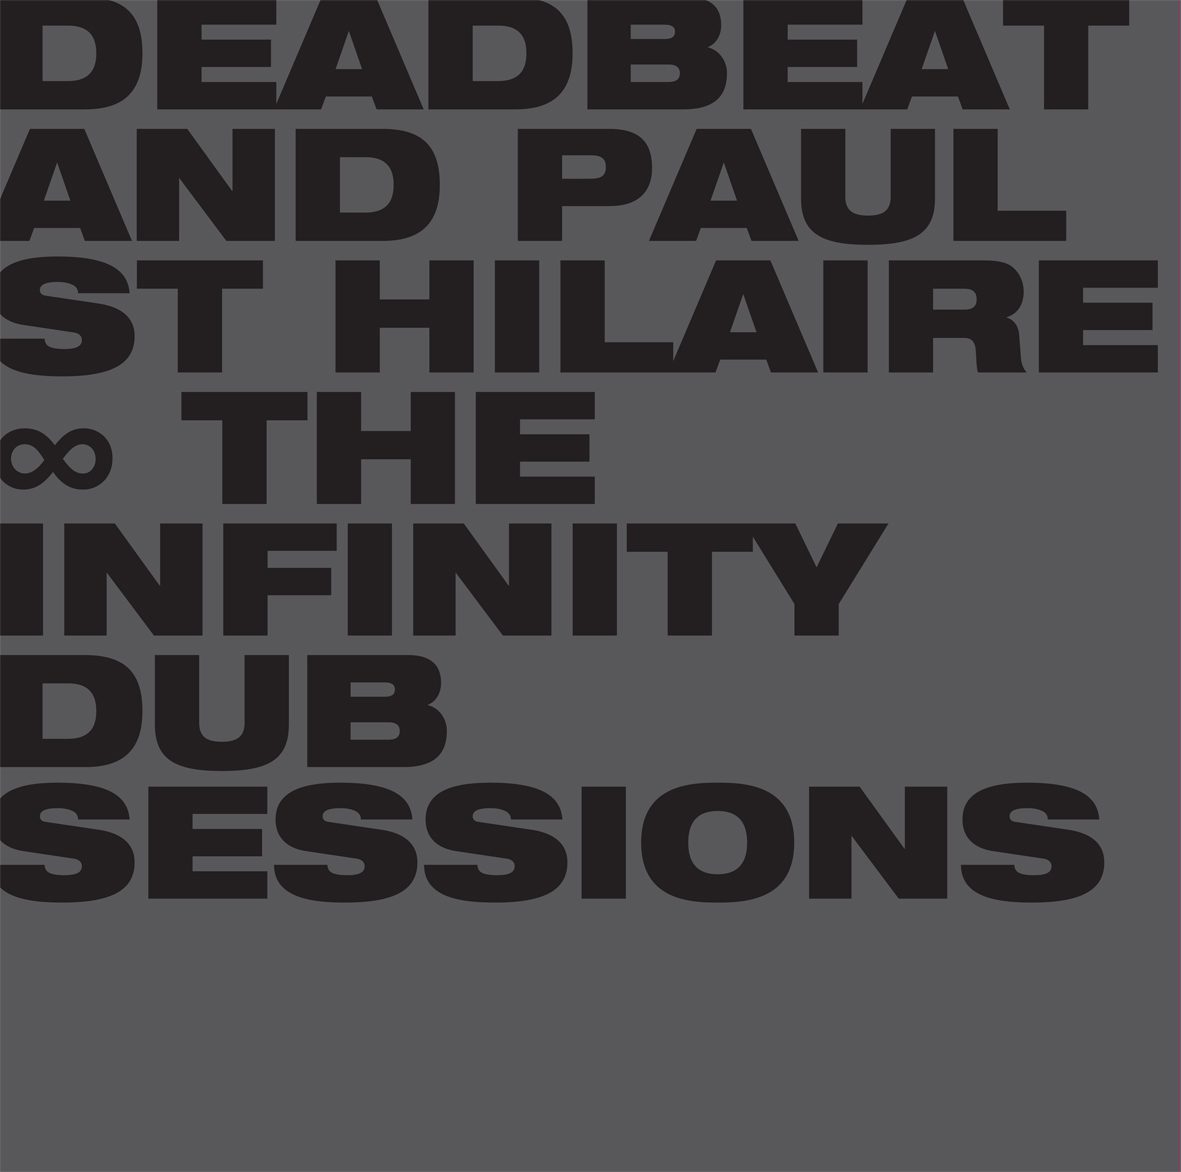 Deadbeat_-_The_Infinity_Dub_Sessions